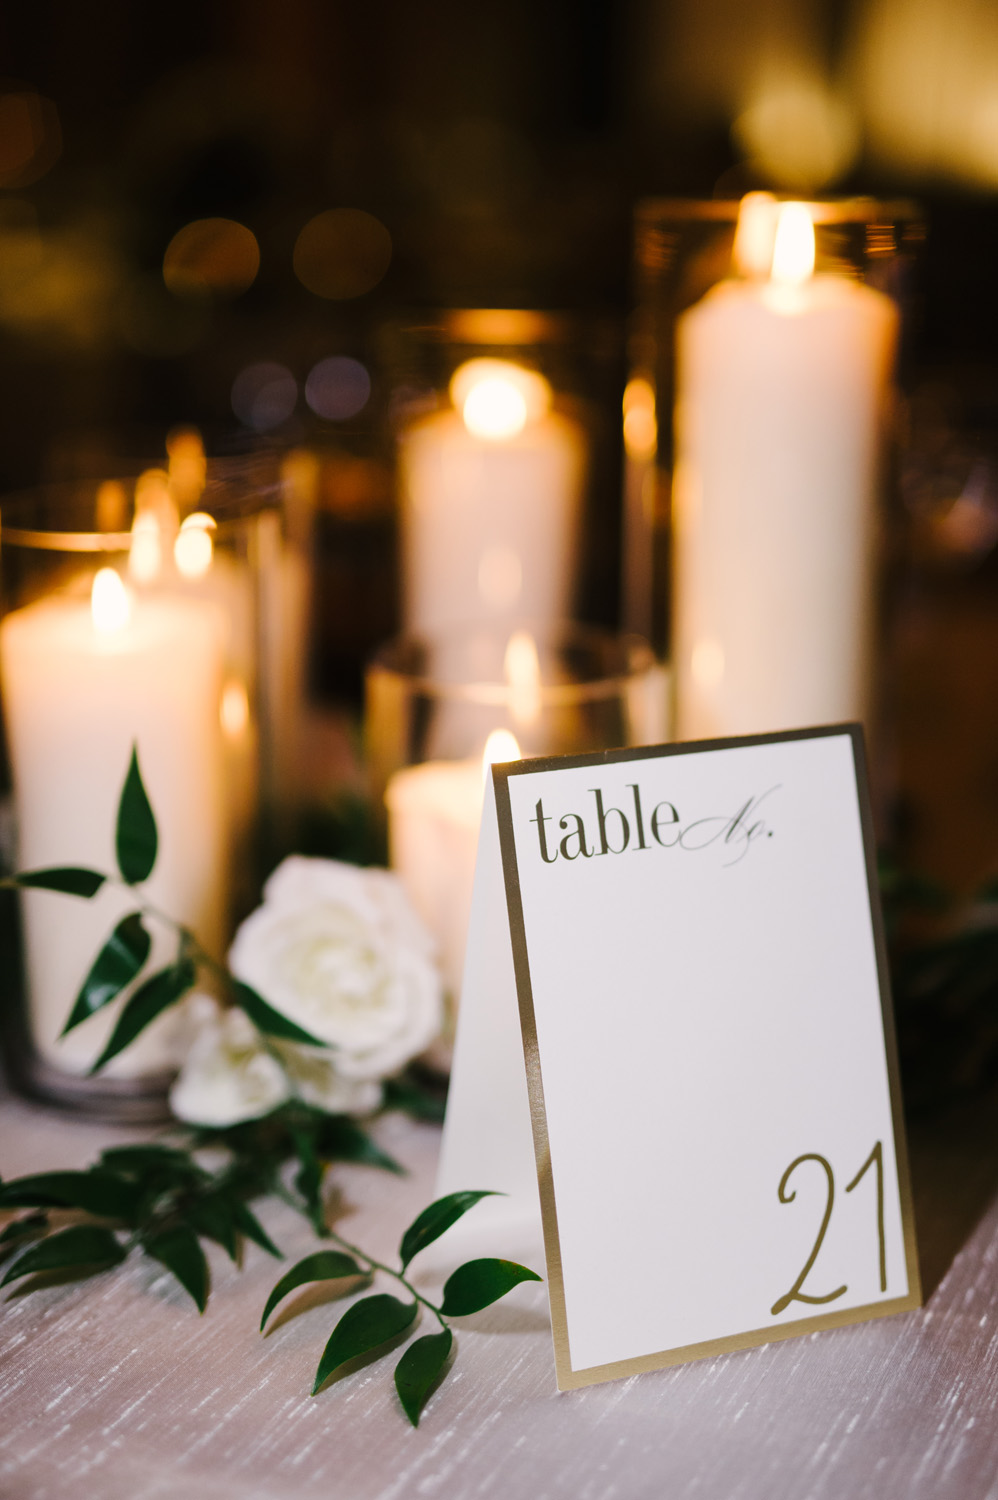 Detail photo of centerpieces at wedding reception.